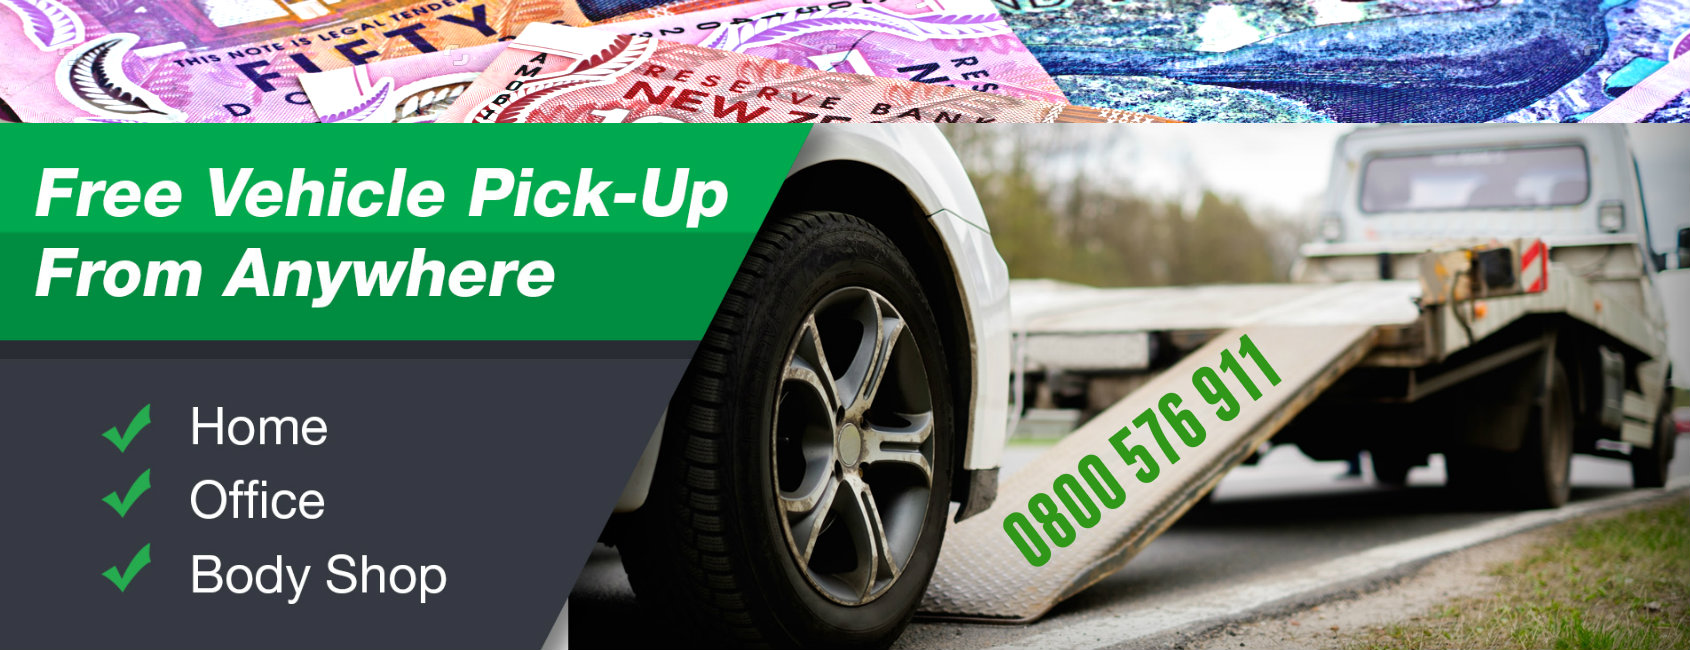 Cash for Cars Hamilton Car Removal Waikato